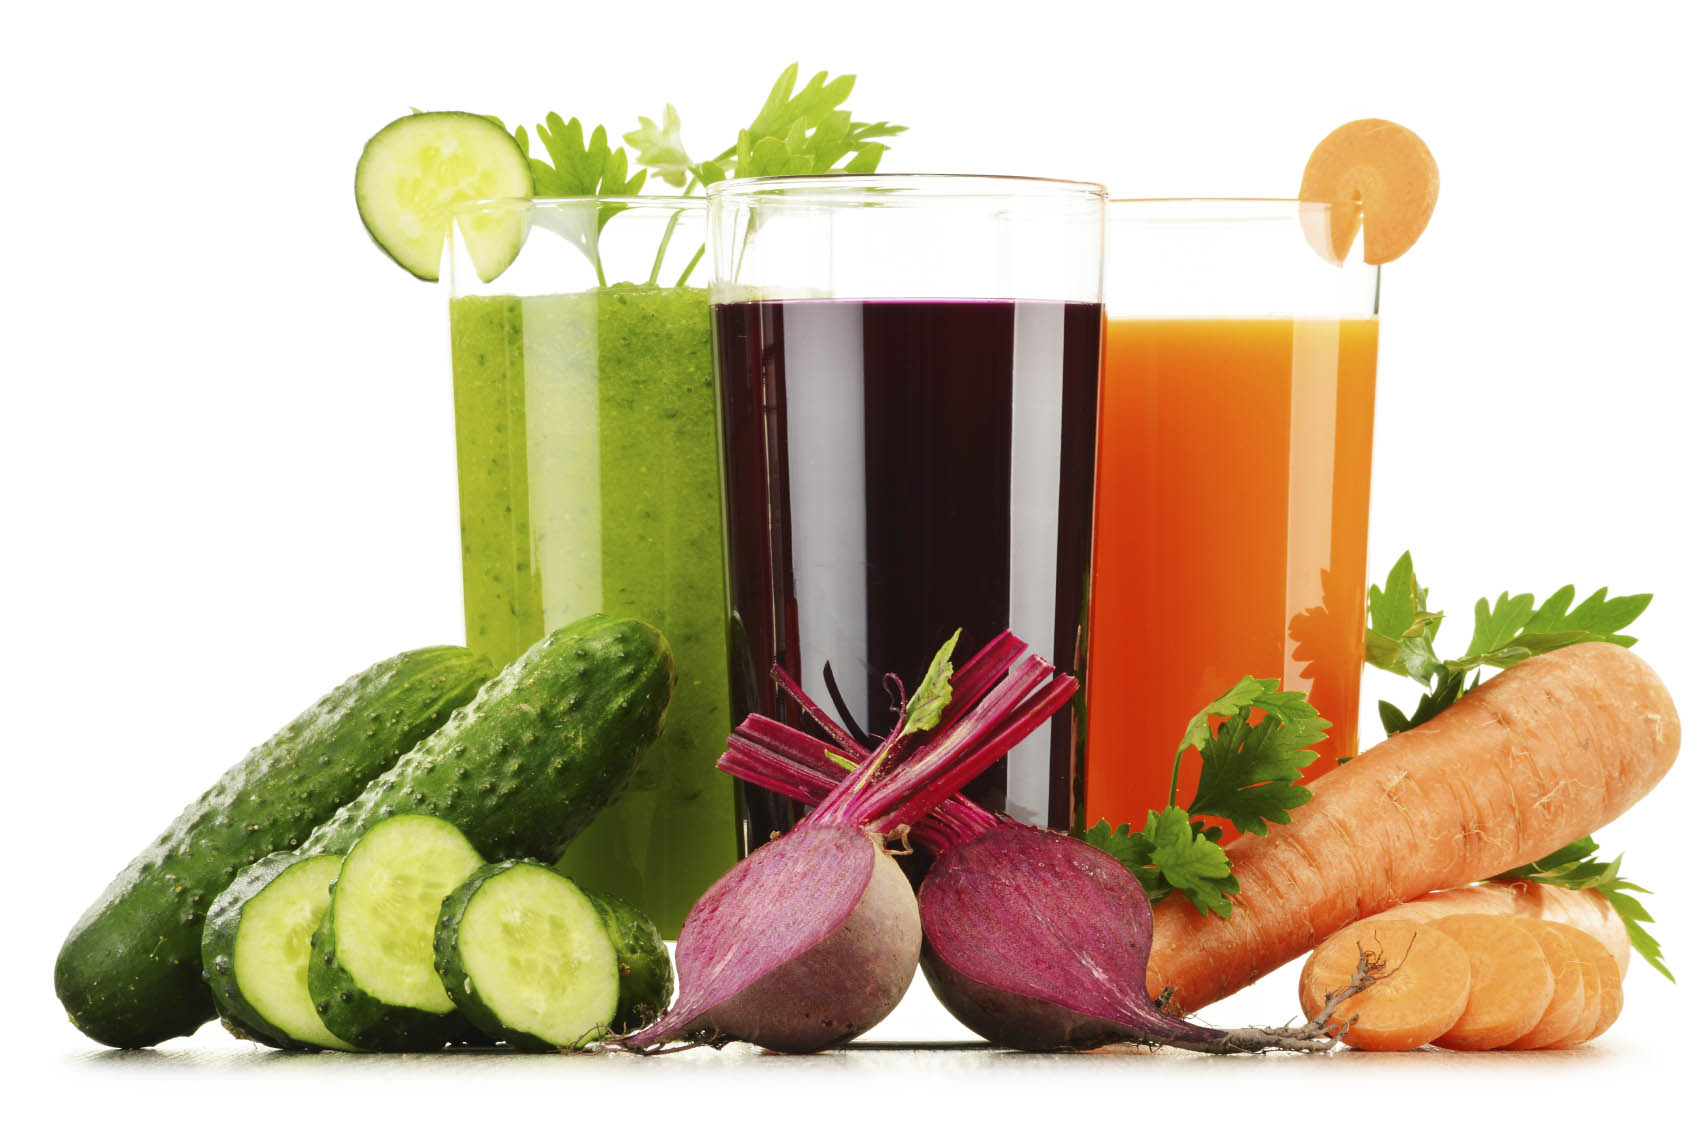 Are detox diets healthy? Our dietitian ended up in the ER